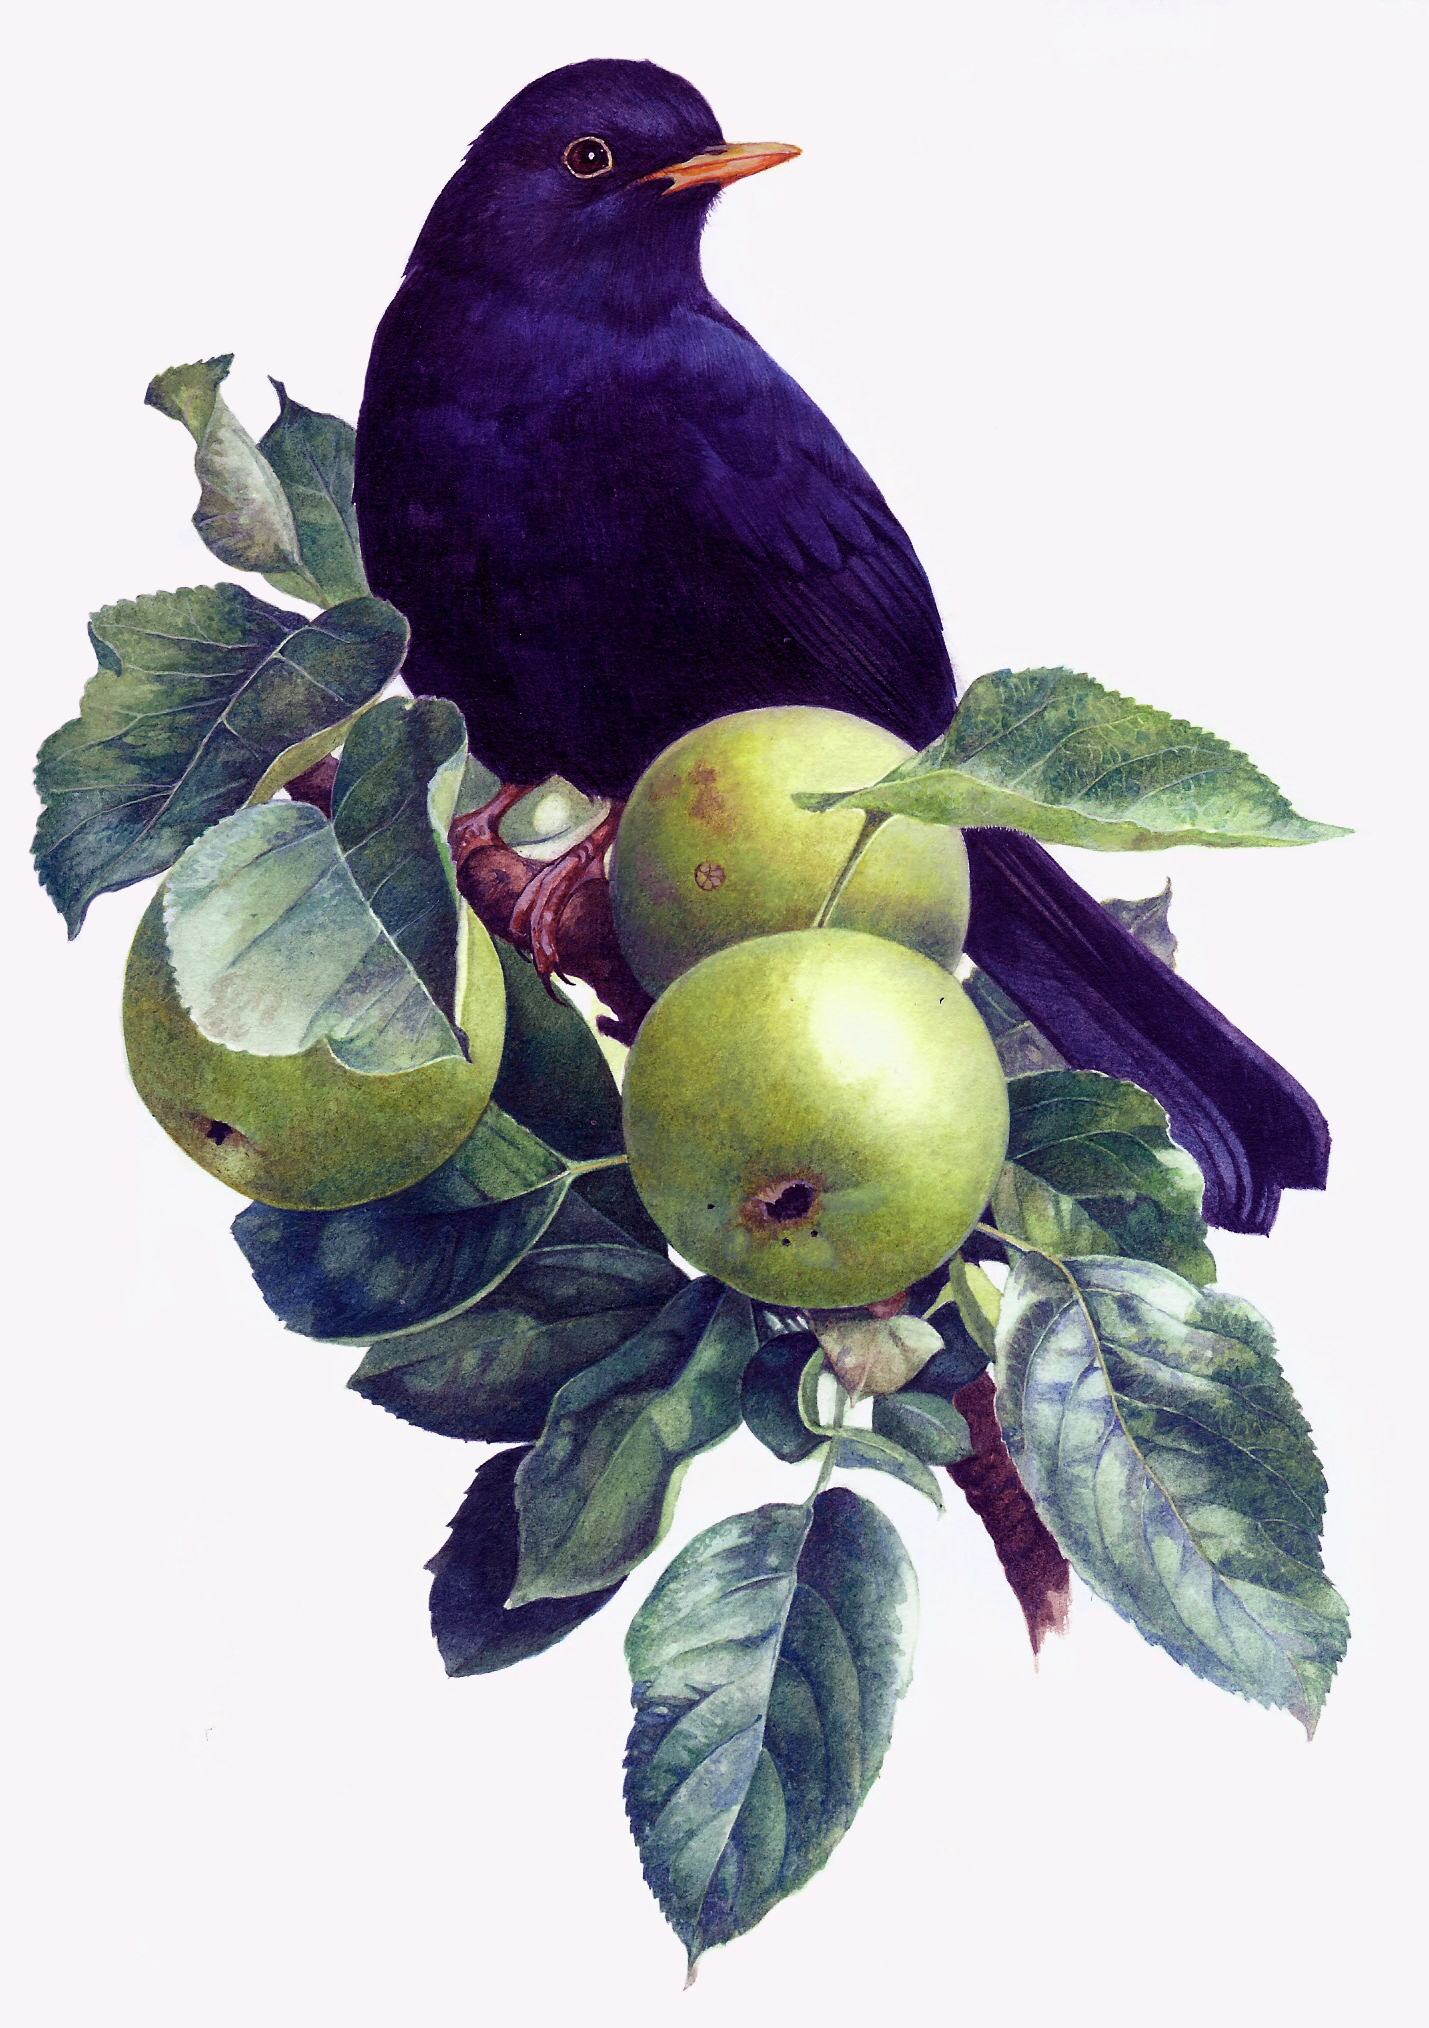 Blackbird+in+an+Apple+tree_edited-1